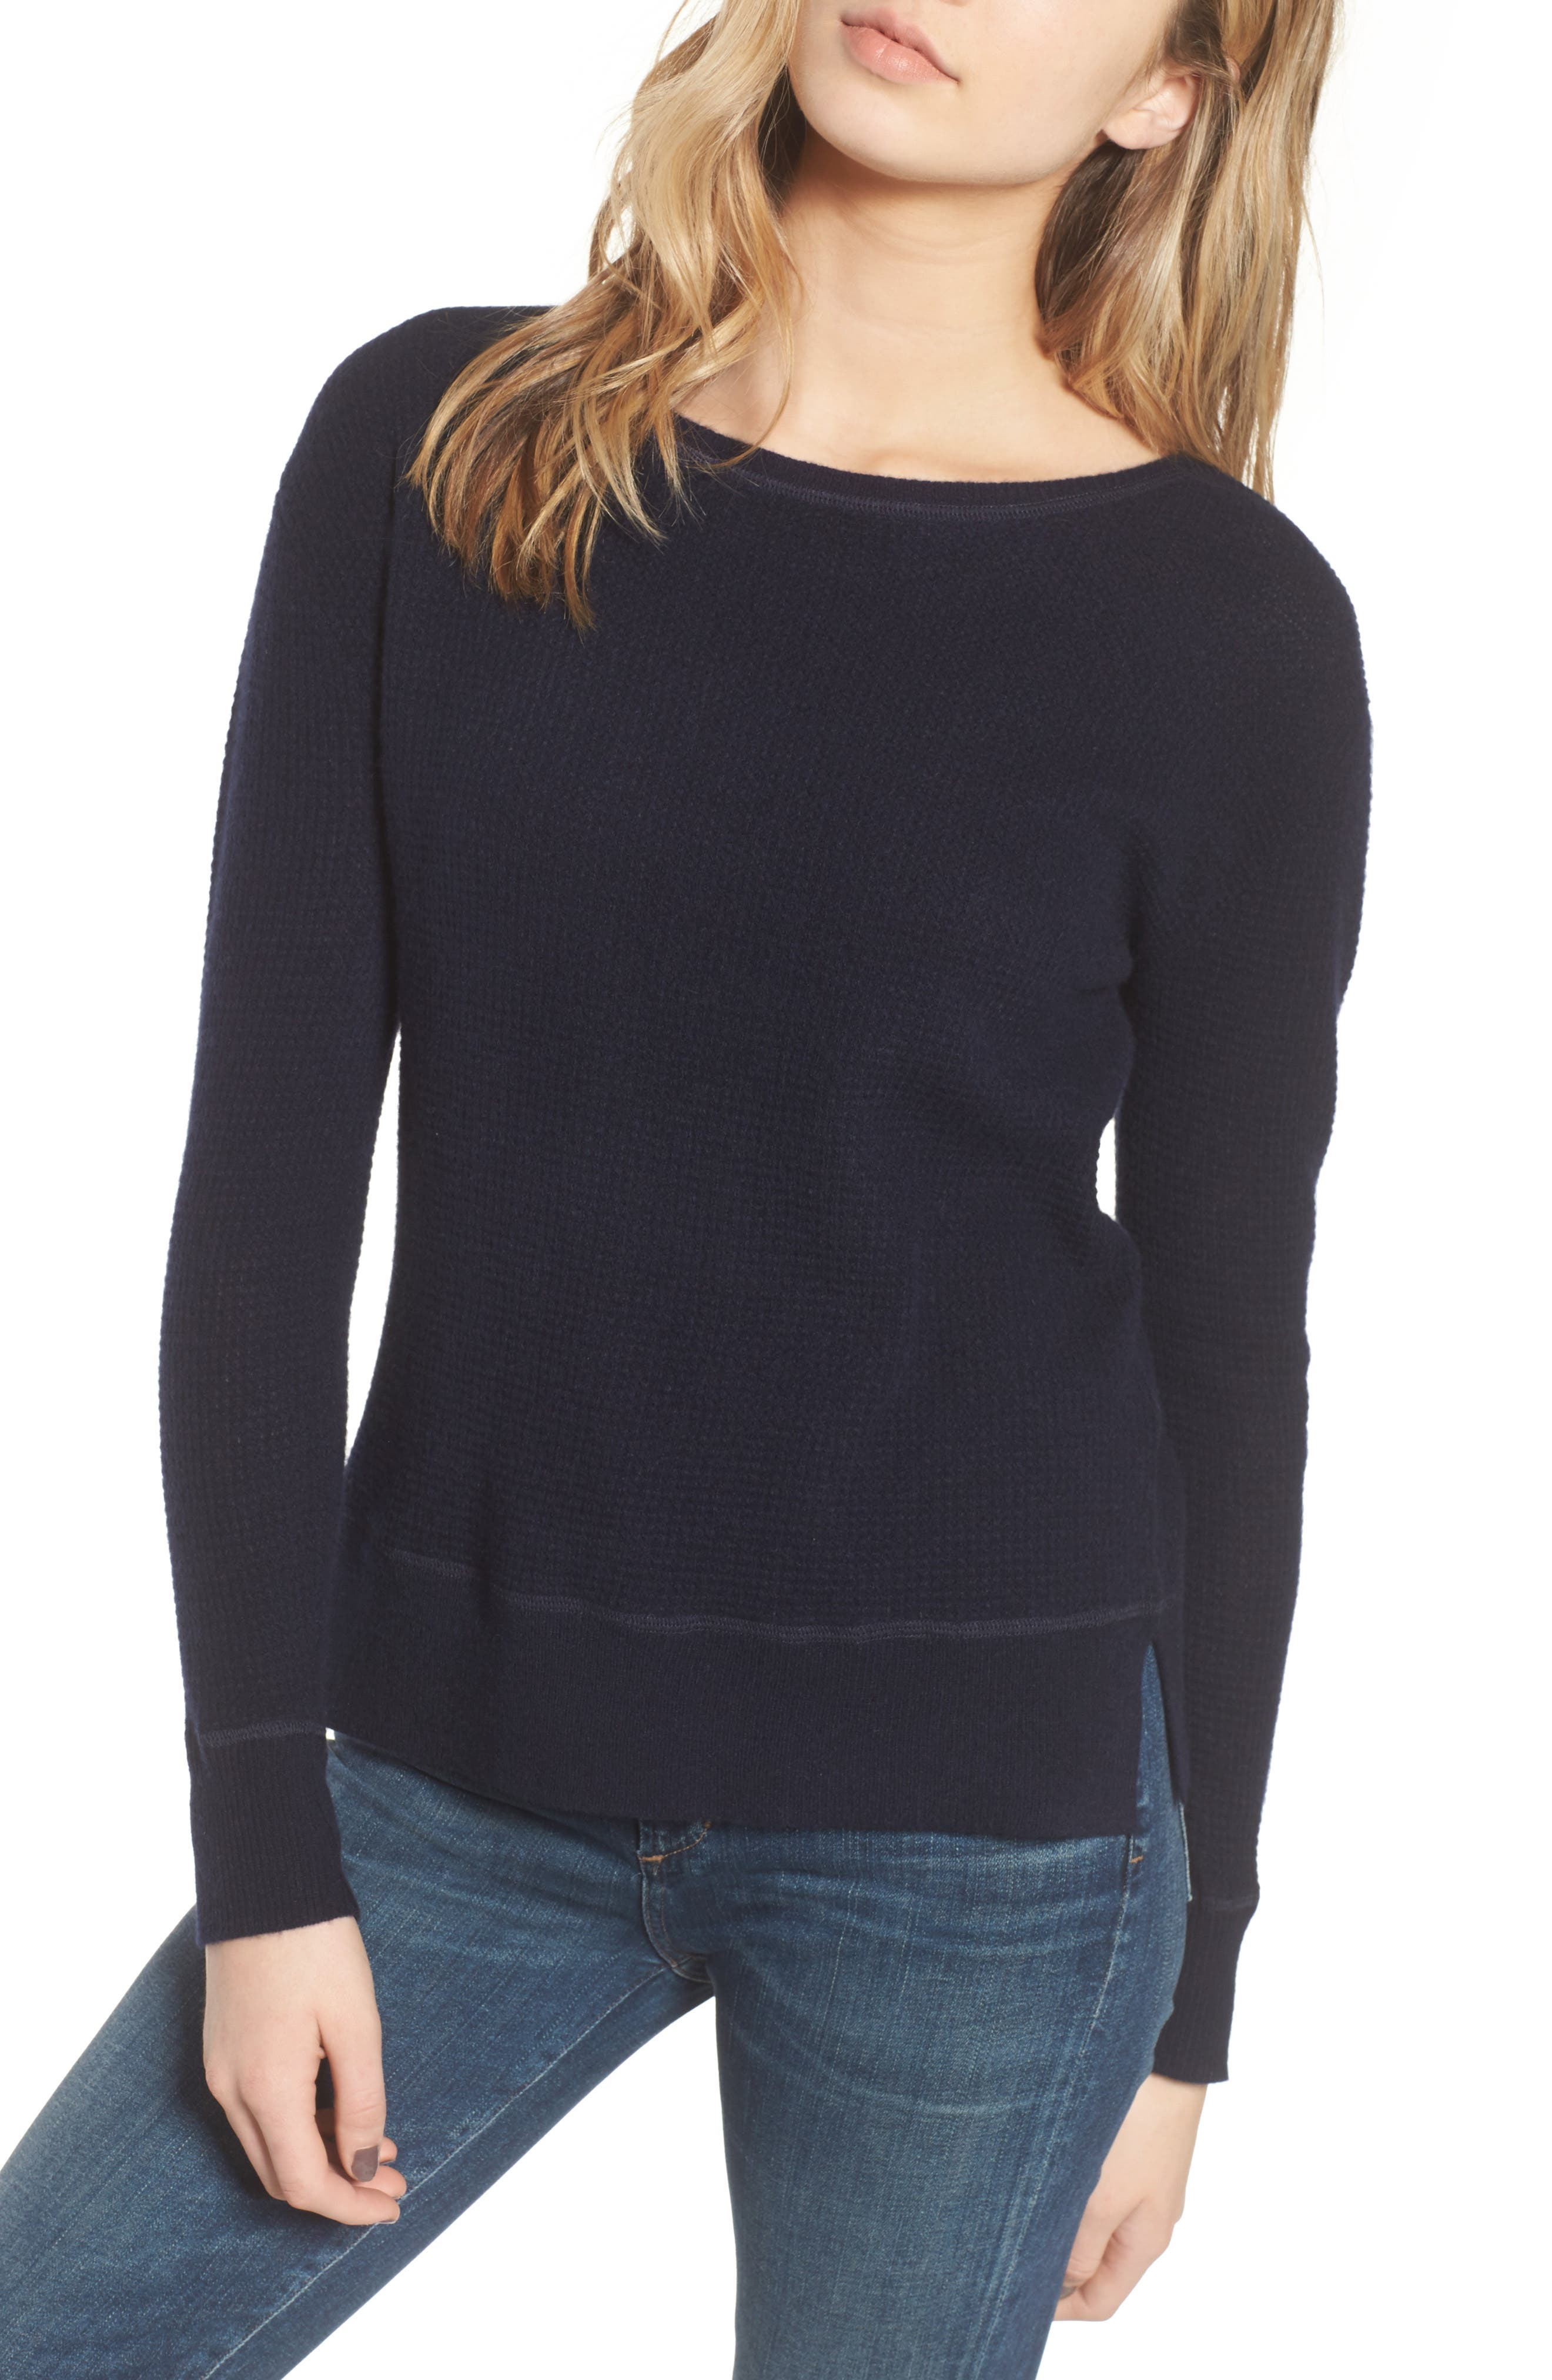 James Perse Thermal Cashmere Top